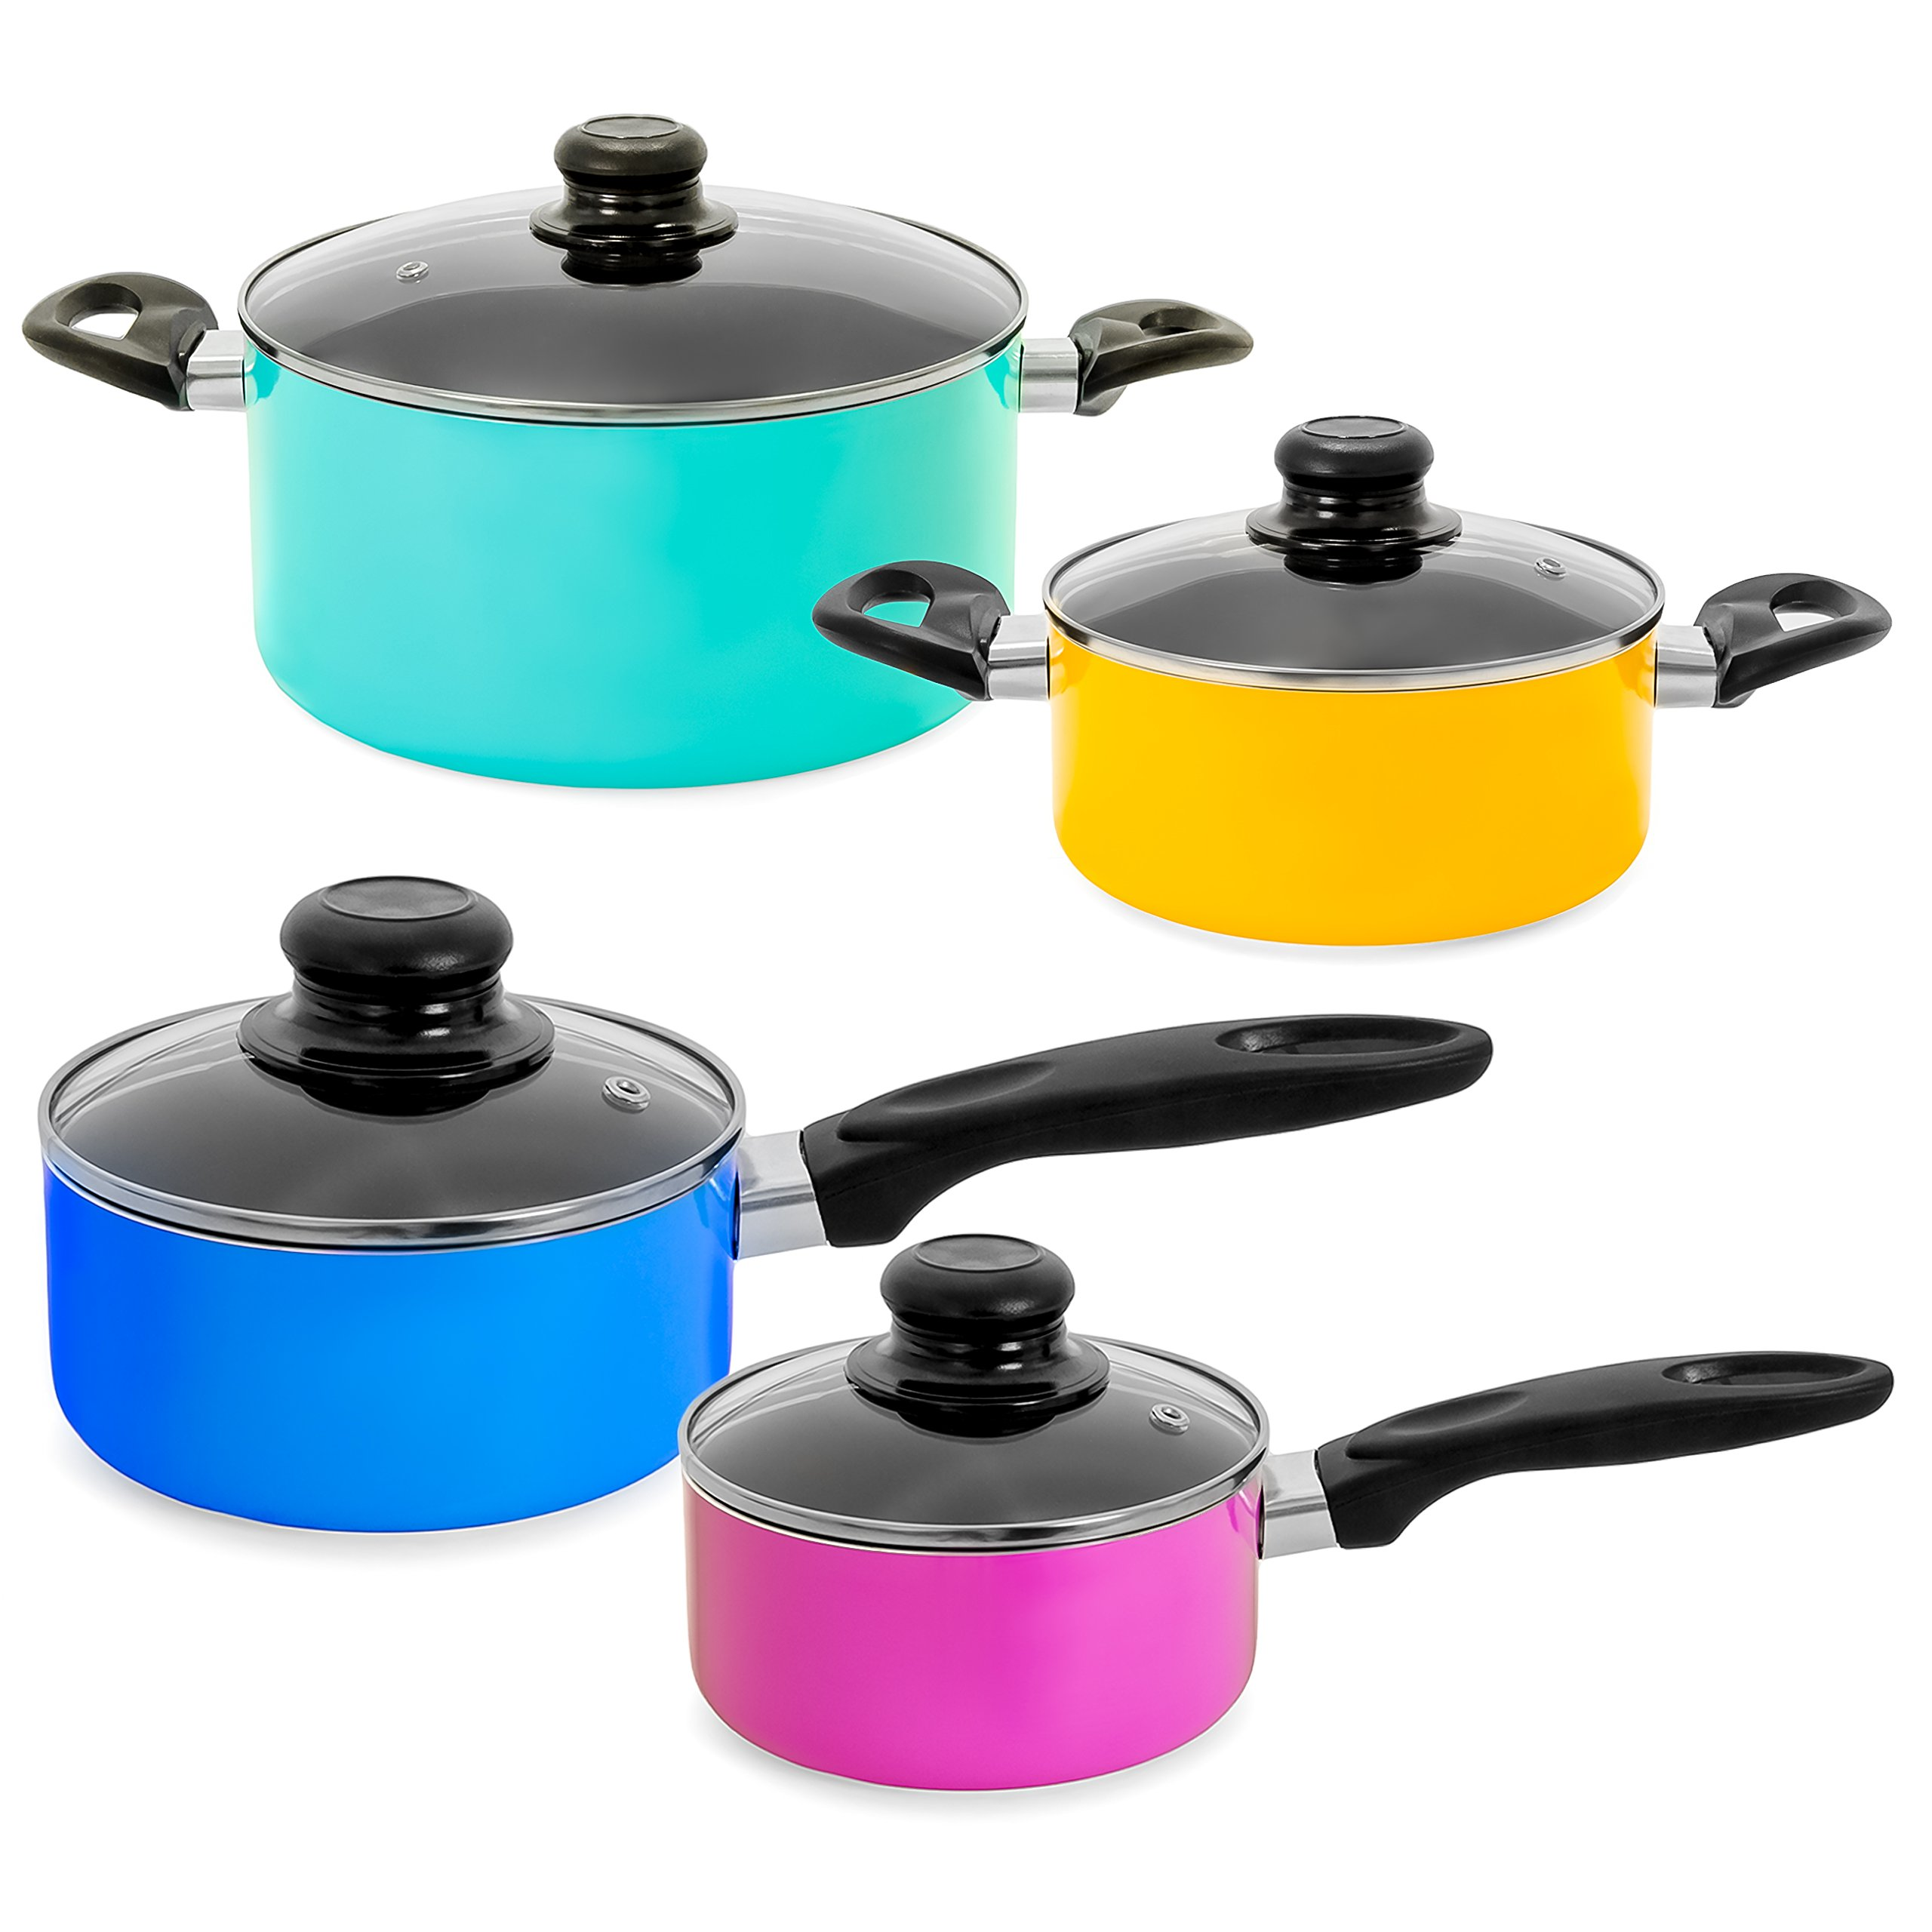 Best Choice Products 15-Piece Nonstick Cookware Kitchen Set w/ 4 Pots, 4 Lids, 2 Pans, 5 BPA Free Utensils - Multicolor by Best Choice Products (Image #5)